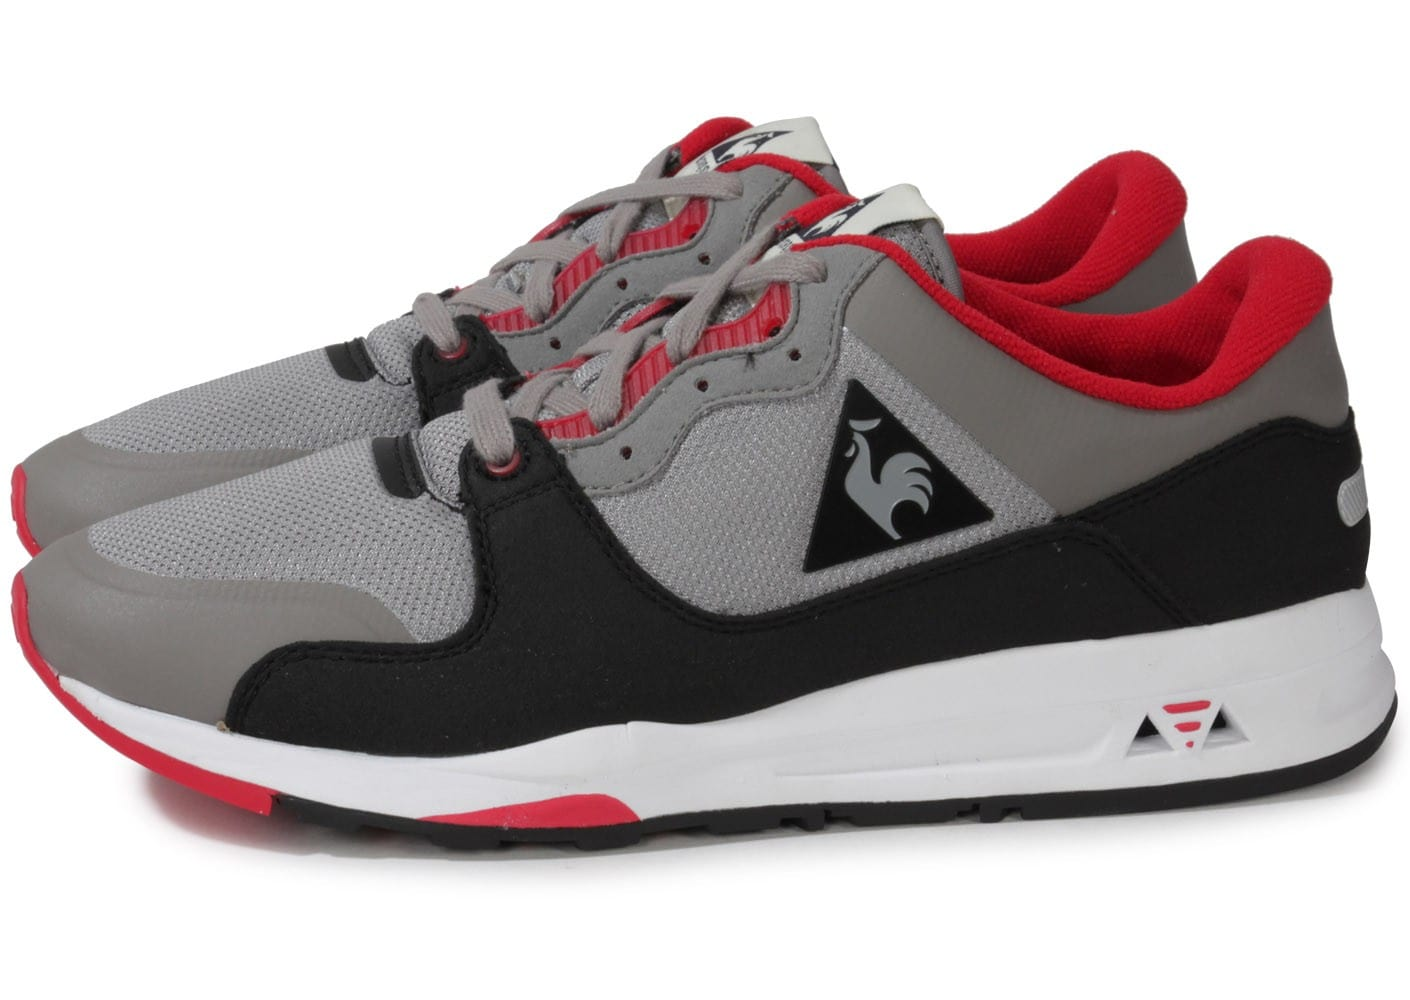 chaussures coq sportif rouge. Black Bedroom Furniture Sets. Home Design Ideas